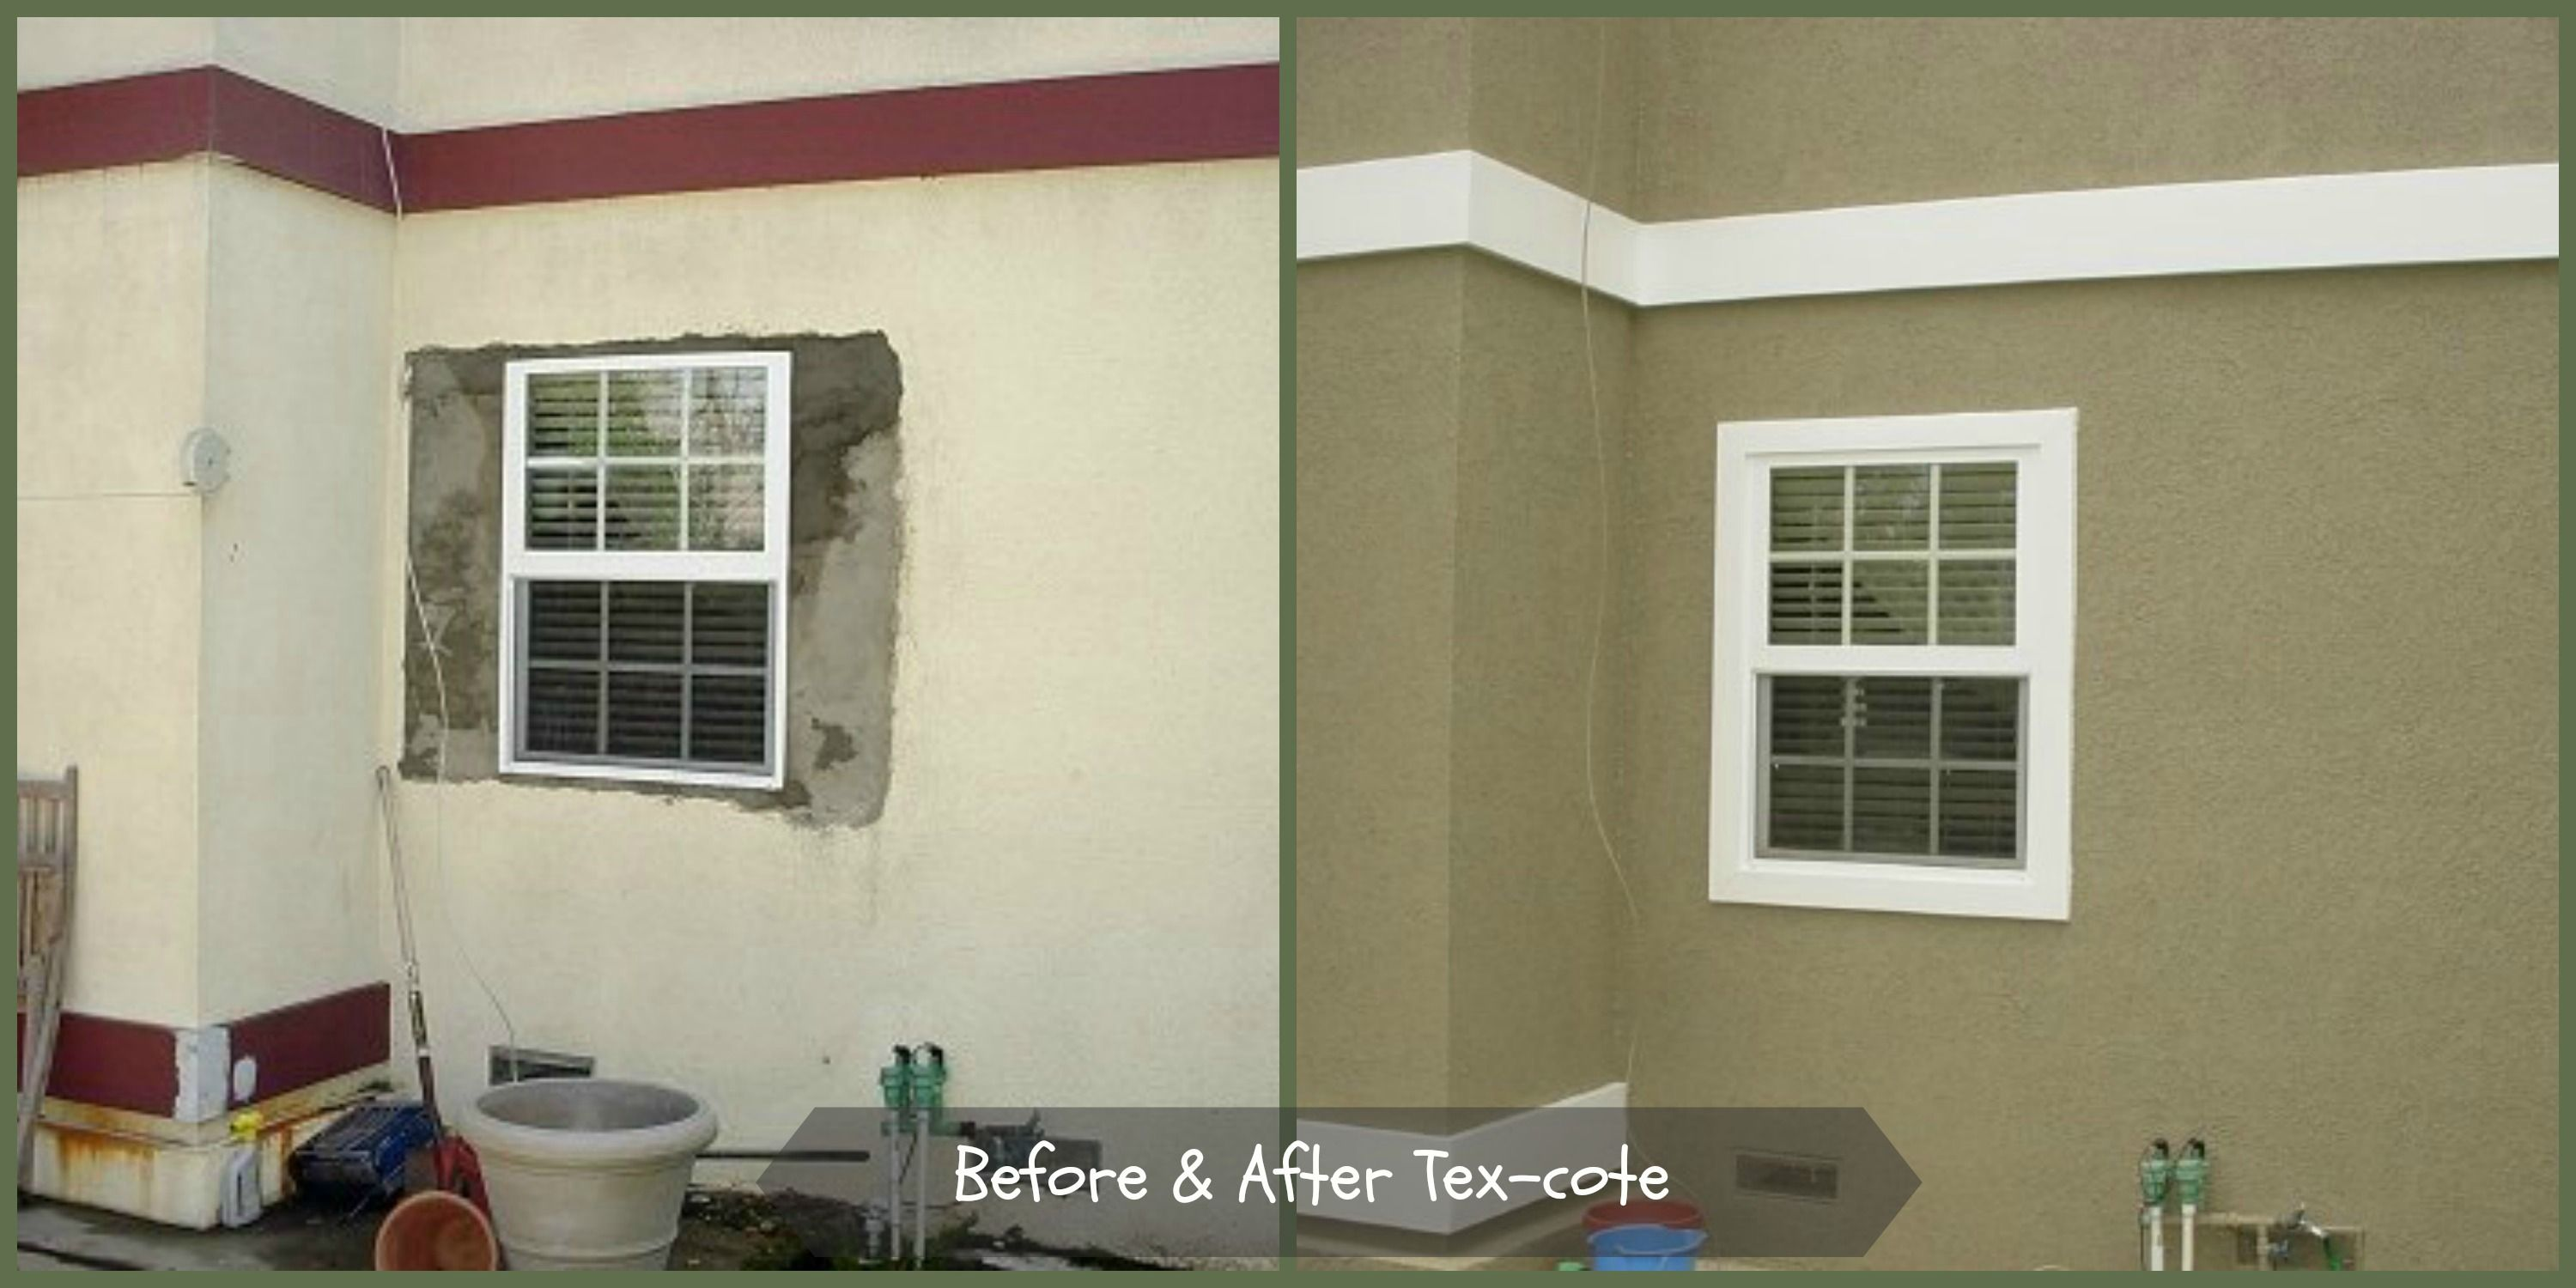 Before And After Tex Cote Anlin Window Systems More Than A Window It S A Window Systems From Conc Vinyl Replacement Windows Energy Efficient Homes Windows